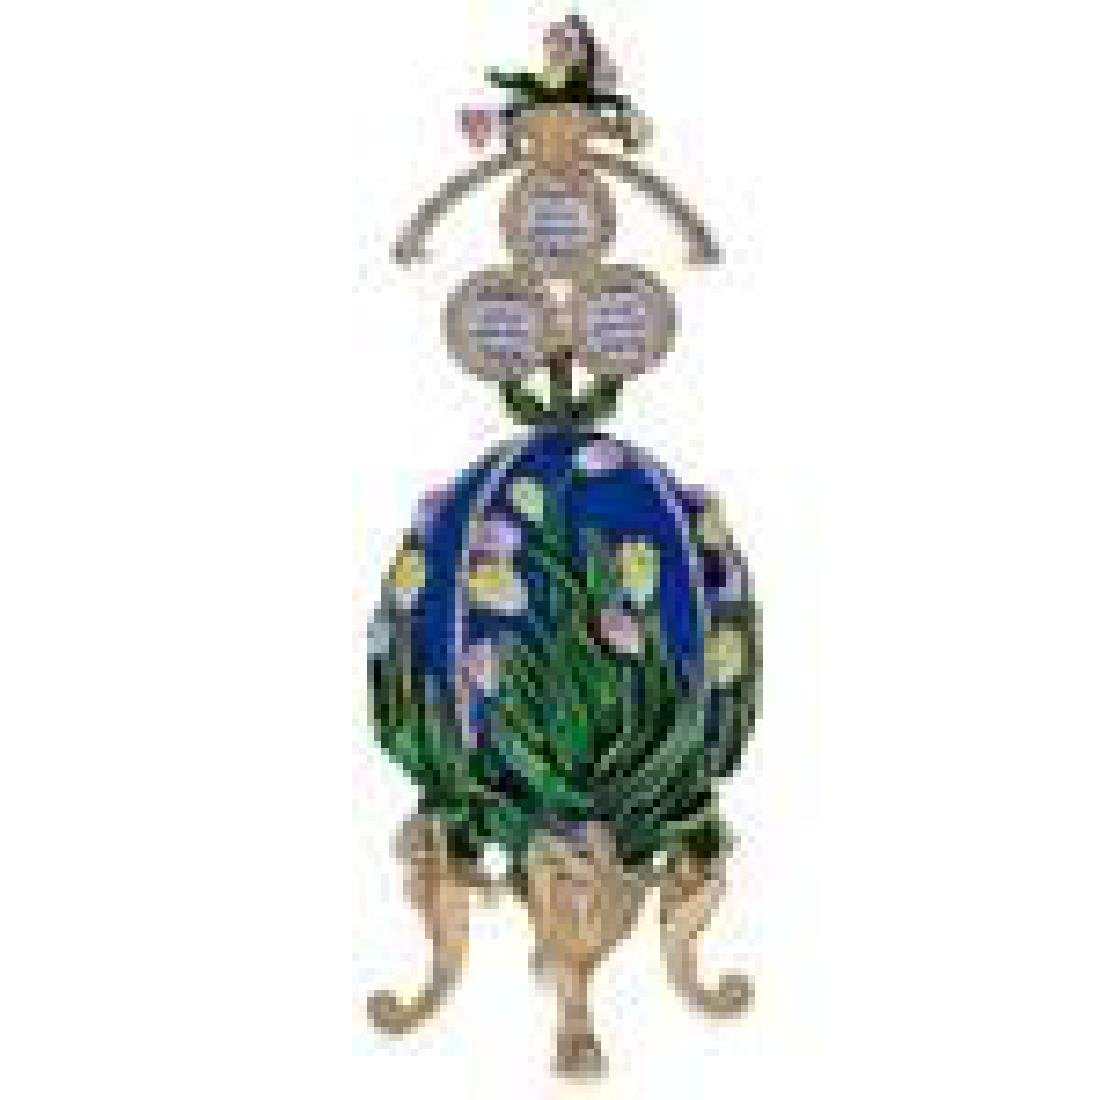 1898 Lilies of the Valley Russian Faberge Egg